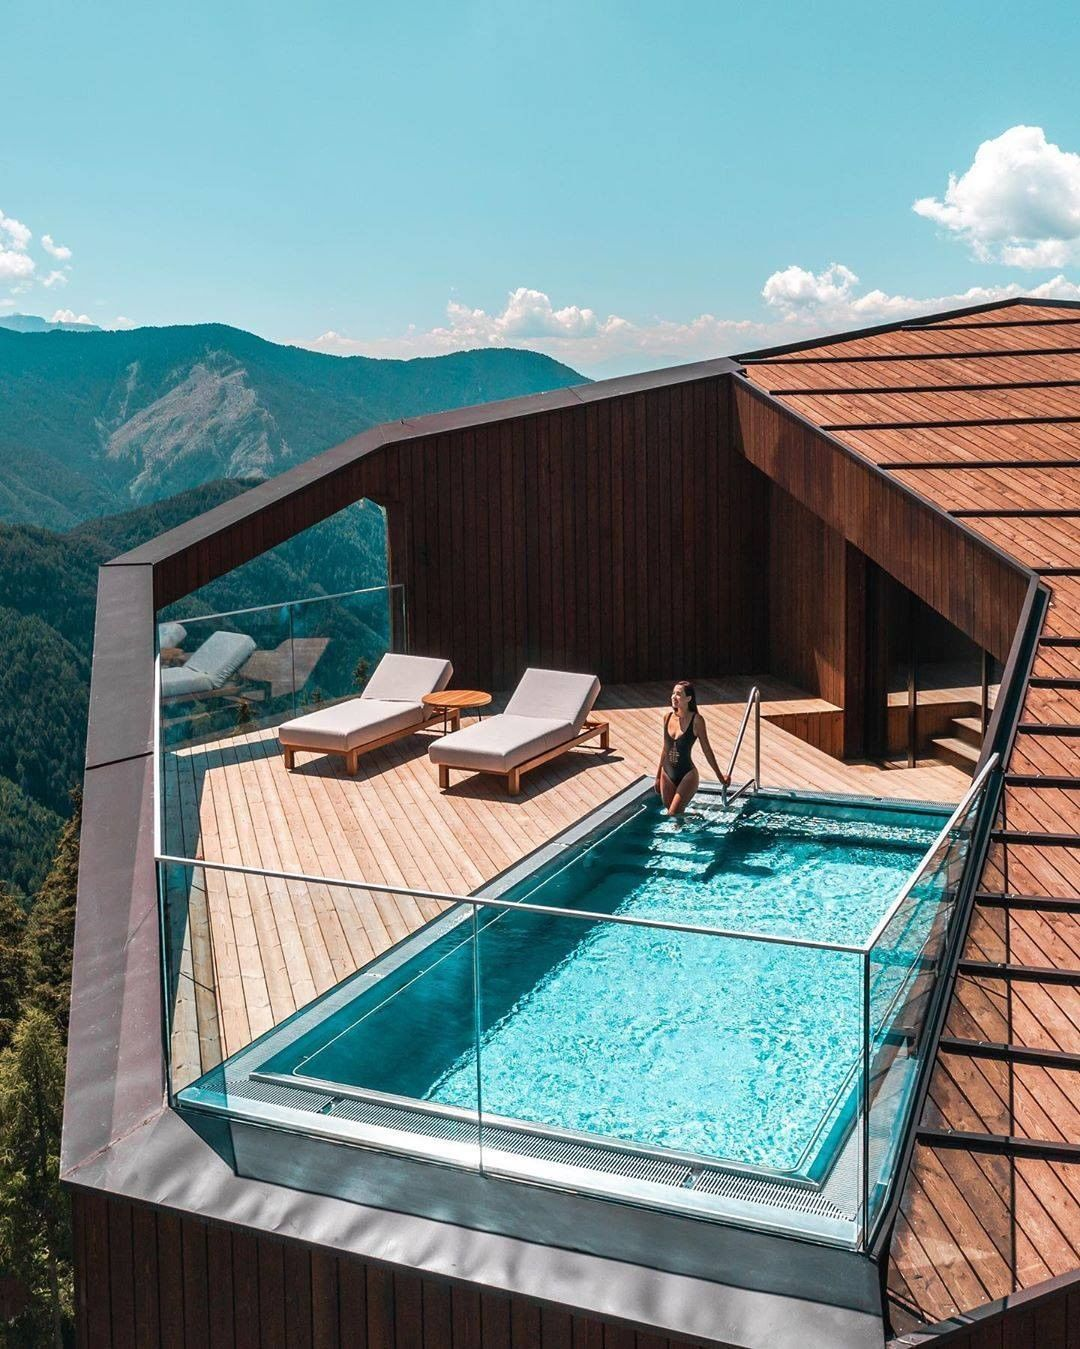 Uncommon Hotels On Instagram Stunning Private Rooftop Pool At The Forestis Dolomites In Bressanone Italy Rooftop Pool Swimming Pool House Pool House Designs